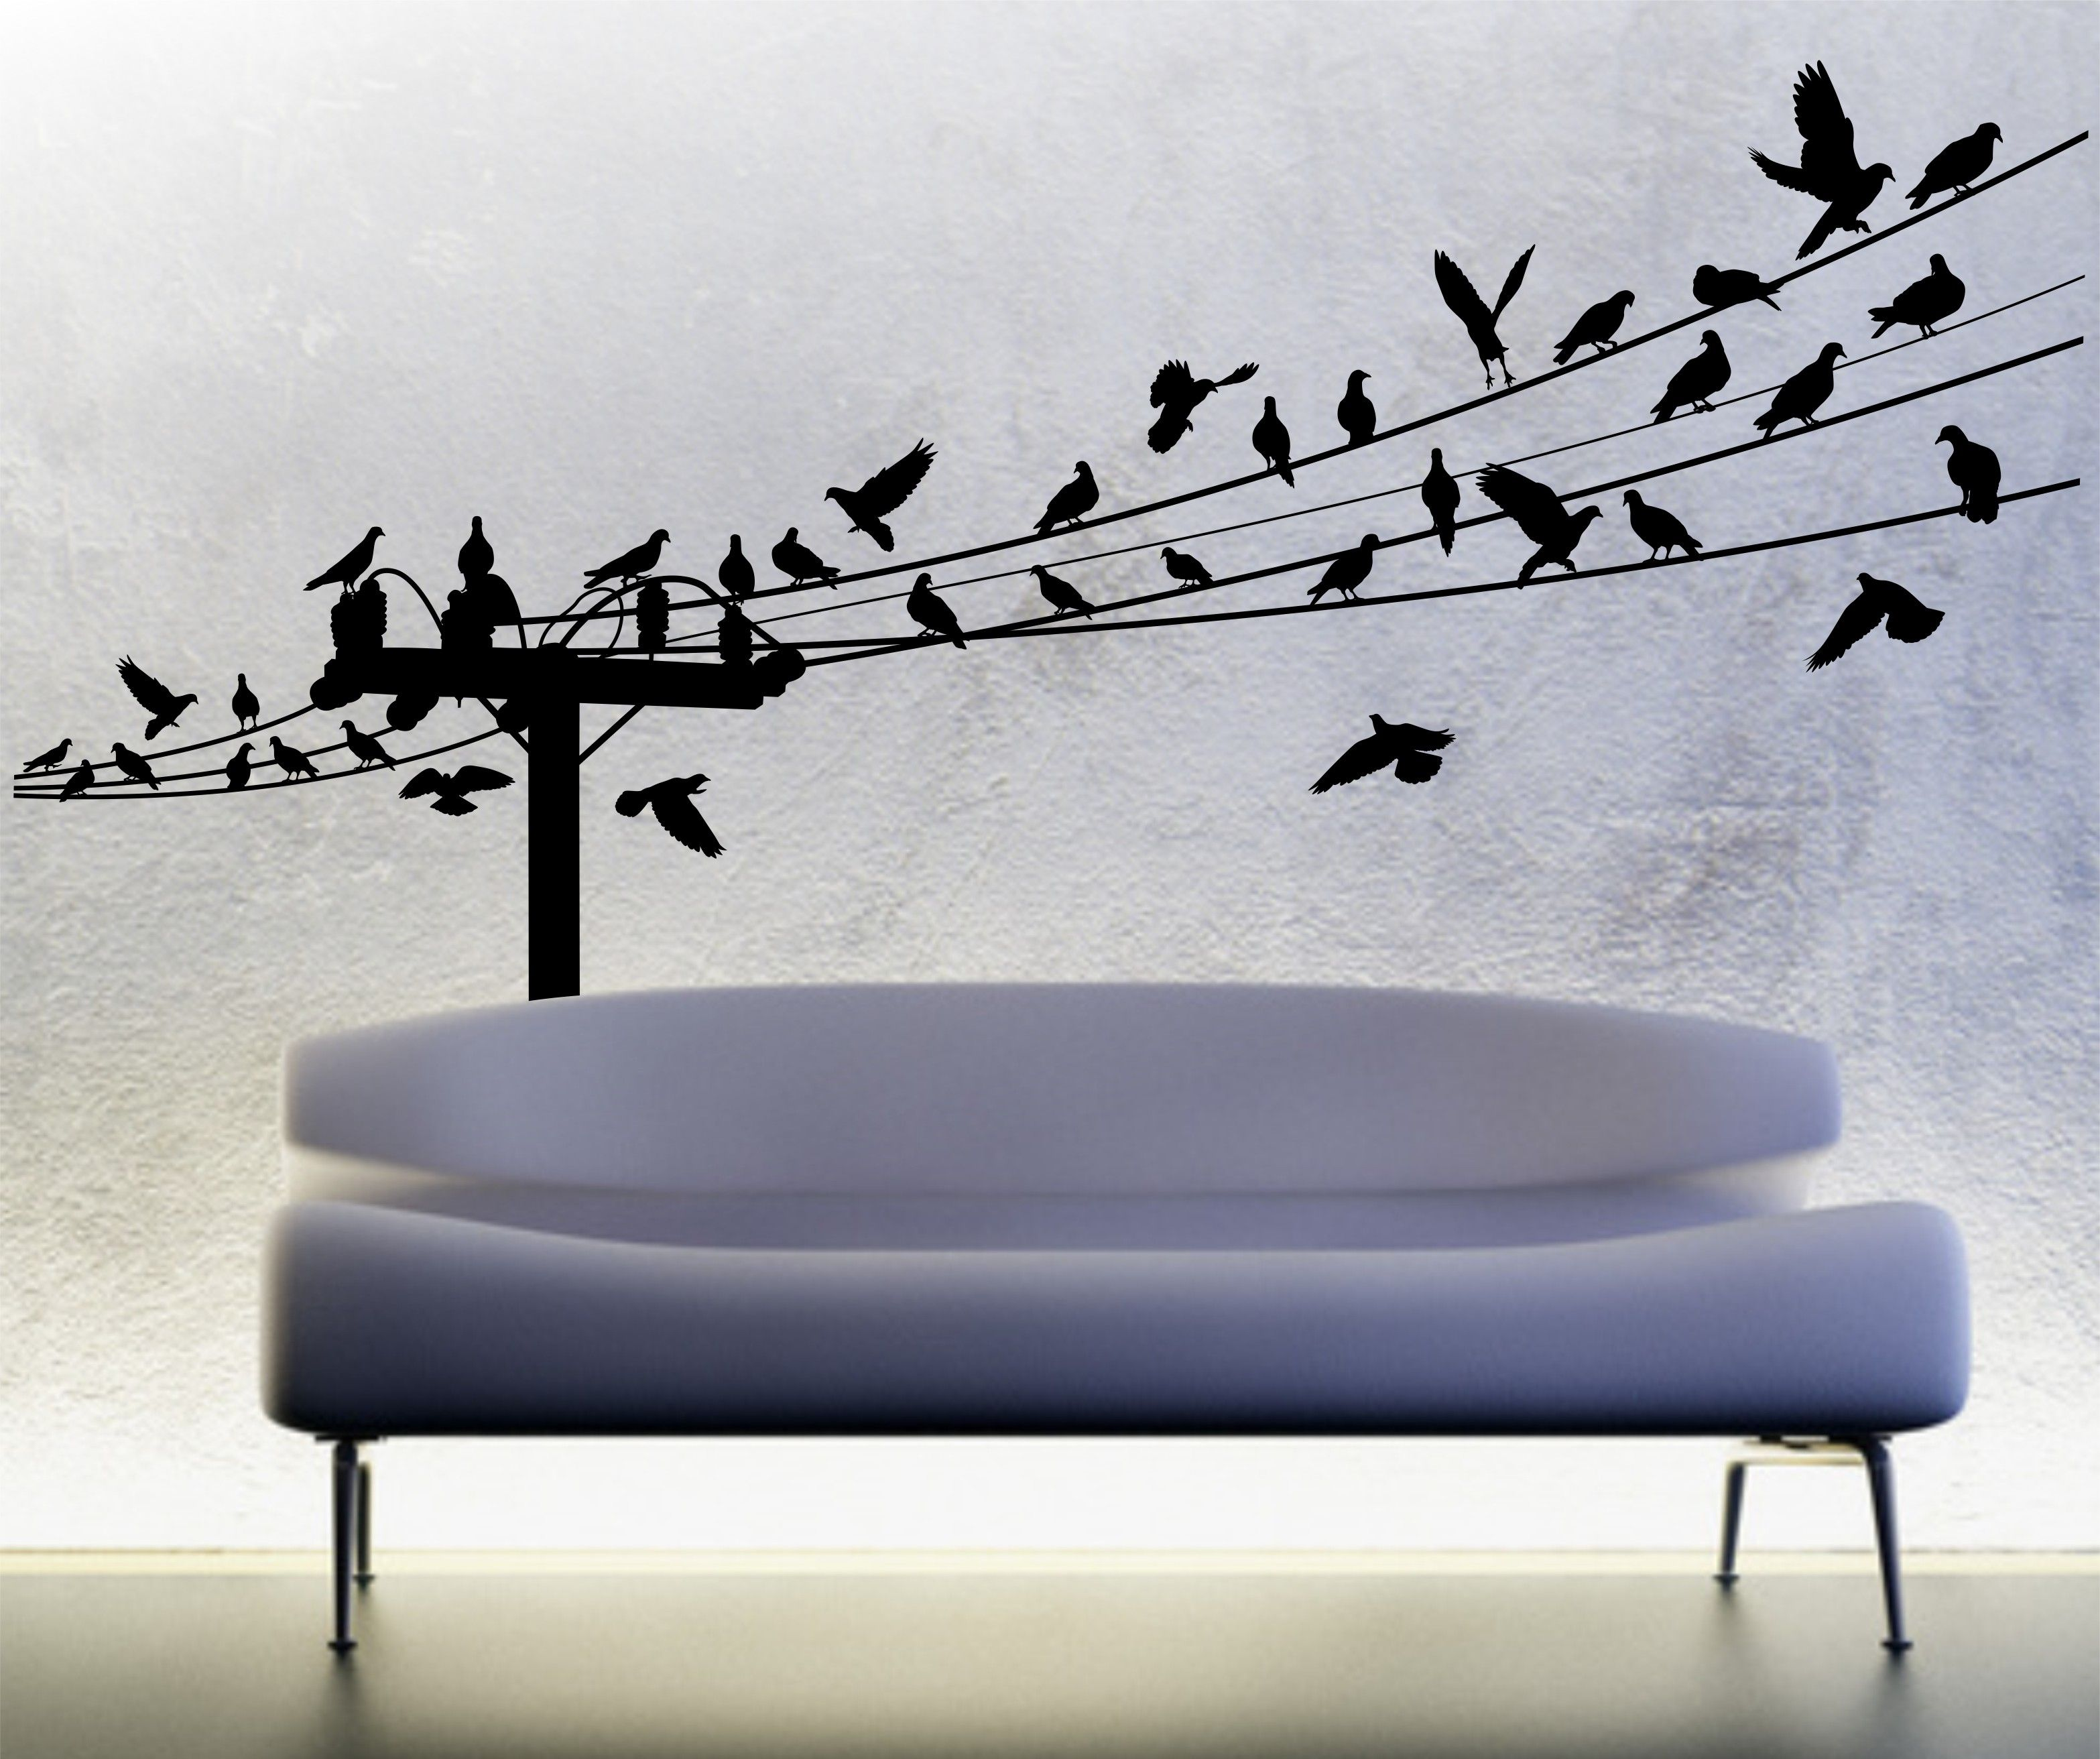 BIRDS ON A WIRE wall decal 7 Feet Long - flying birds vinyl wall ...